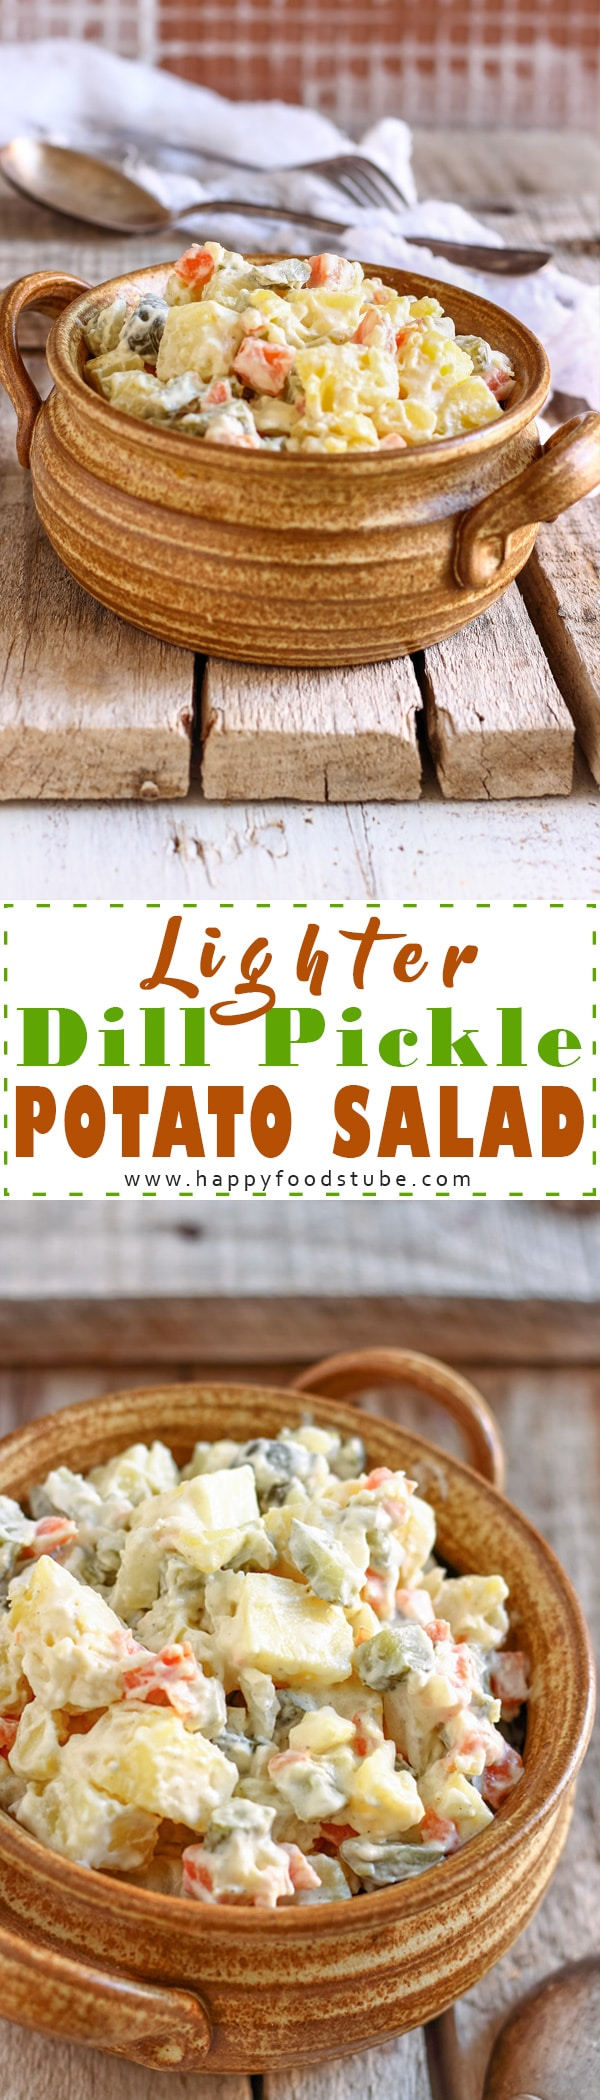 Lighter dill pickle potato salad recipe without mustard and vinegar. This creamy salad with dill pickles is a perfect side dish or a party food. Simple ingredients and ready in 30 minutes. #potatosalad